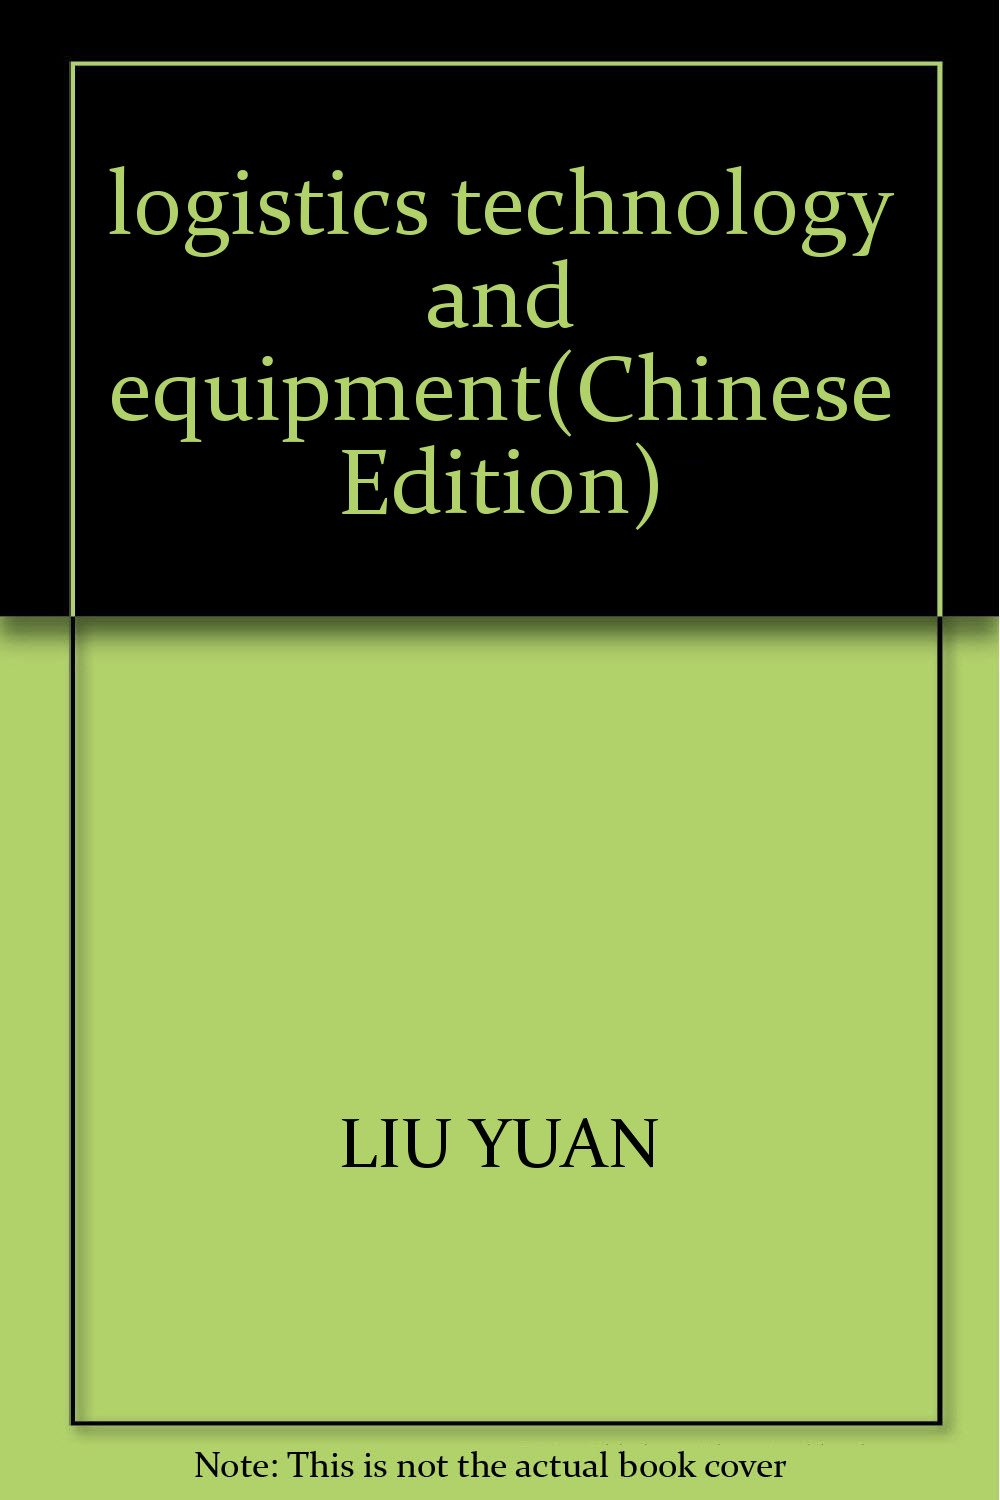 Download logistics technology and equipment(Chinese Edition) ebook